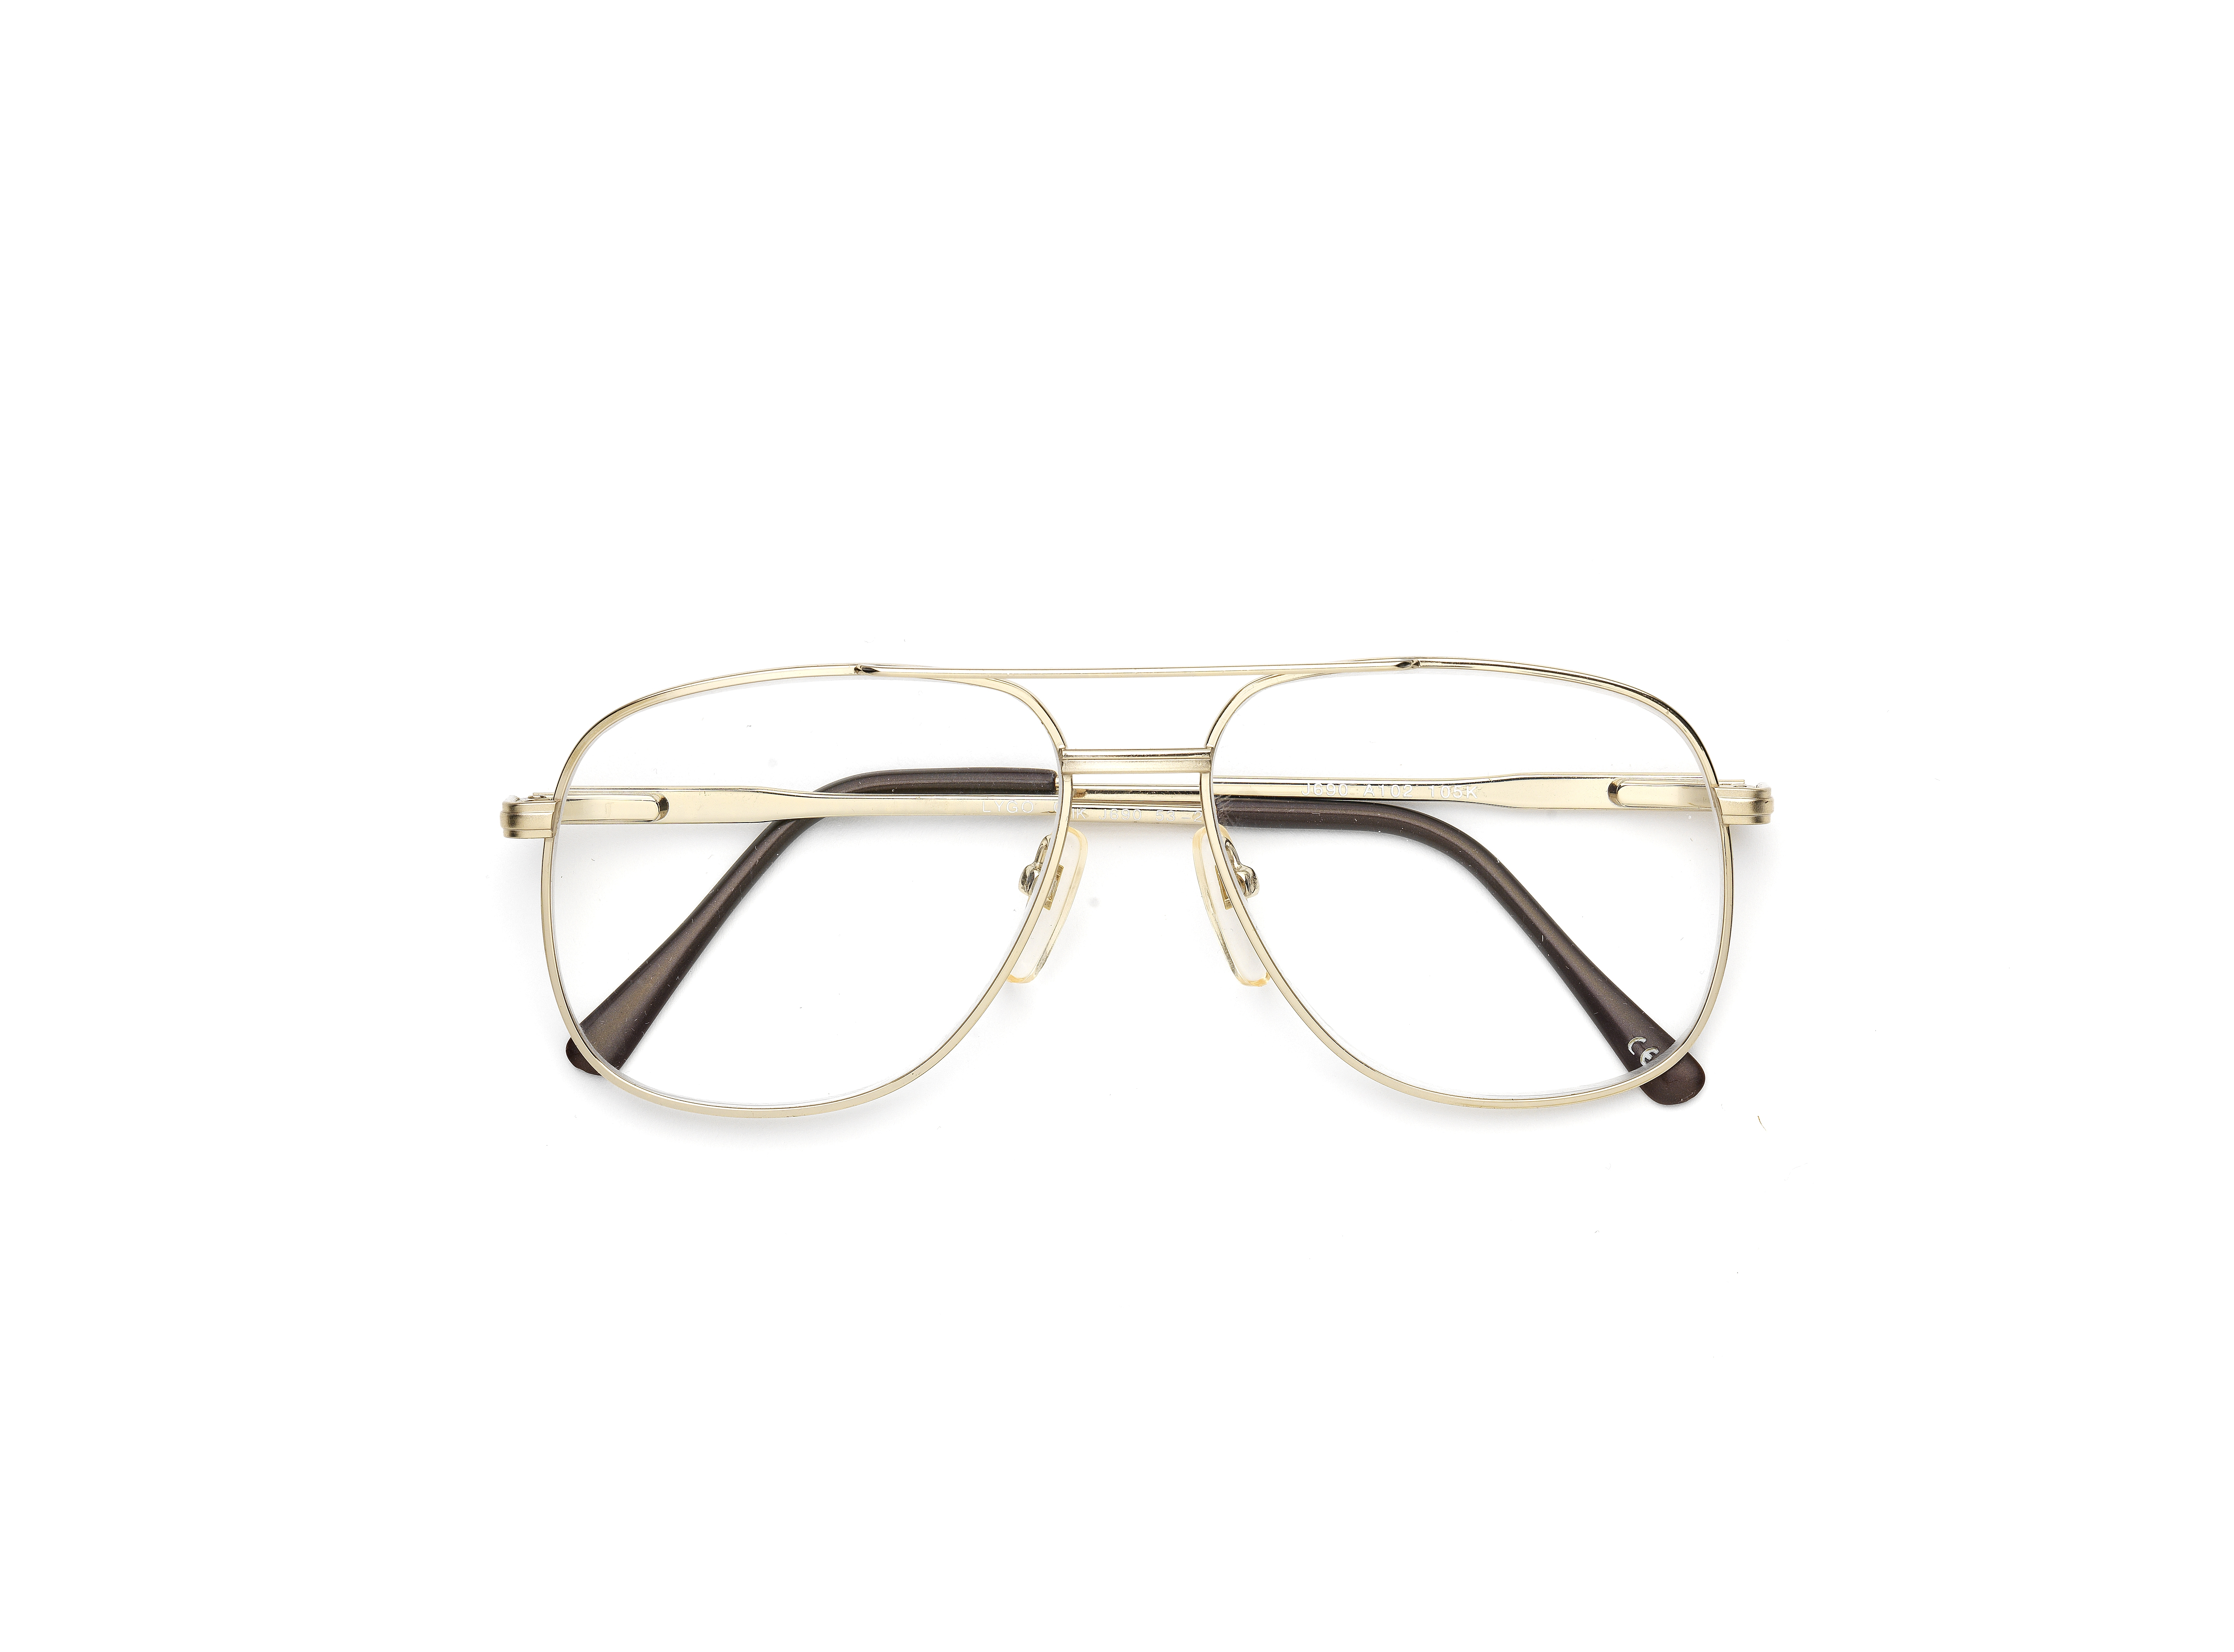 Lot 24 - Brad Pitt: A pair of clear reading glasses worn by Brad Pitt for his role as 'Glen McMahon' in Wa...